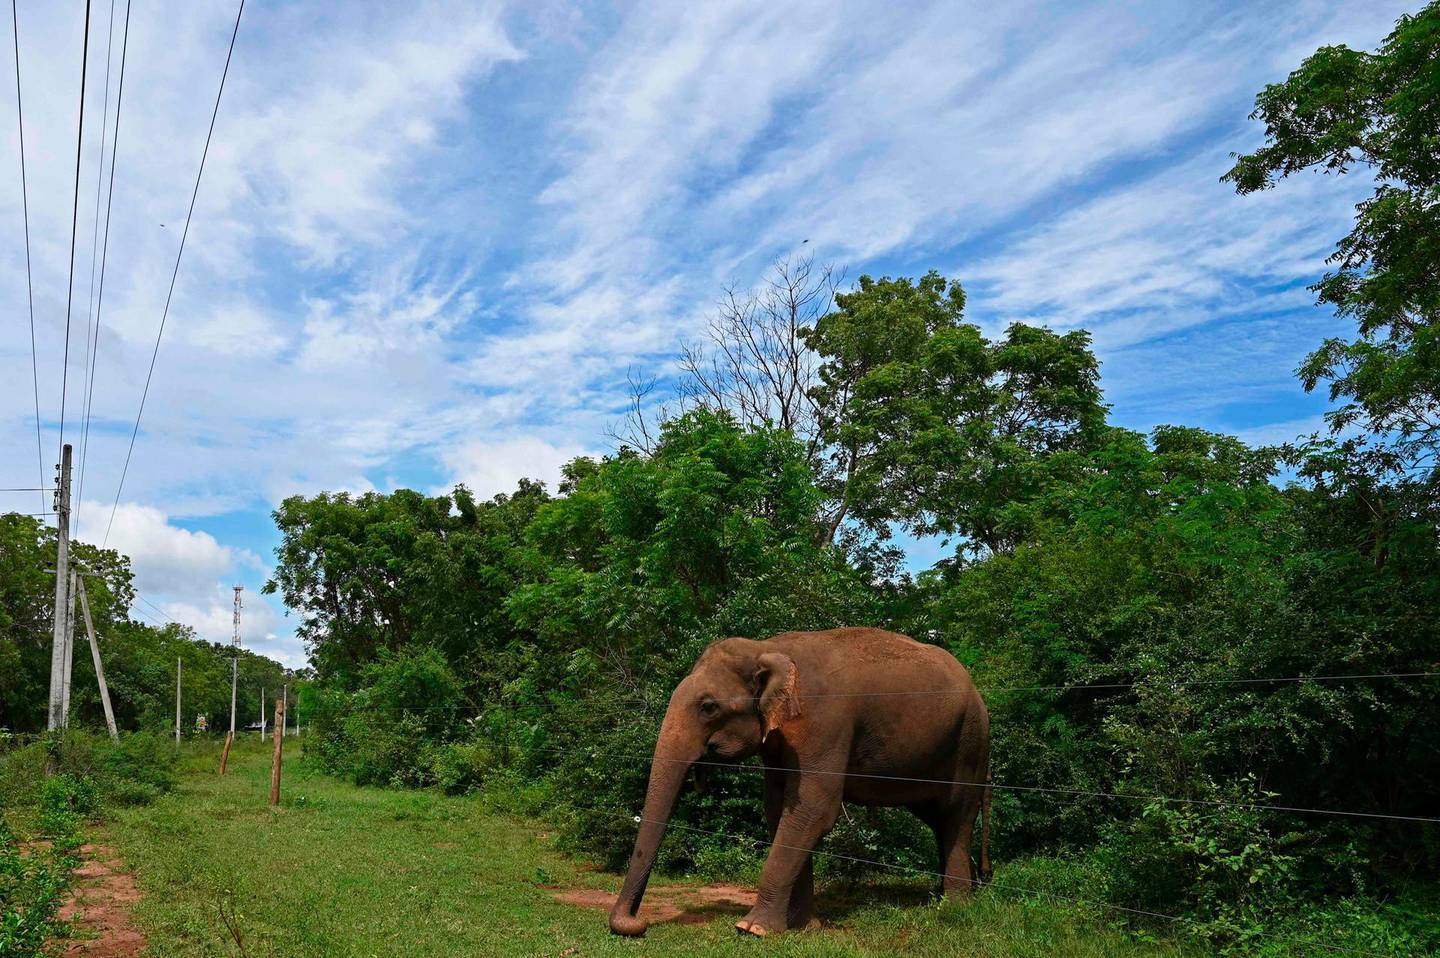 An elephant is seen behind an electric fence marking the boundary of a wildlife sanctuary in Udawalawe on January 16, 2021. / AFP / Lakruwan WANNIARACHCHI